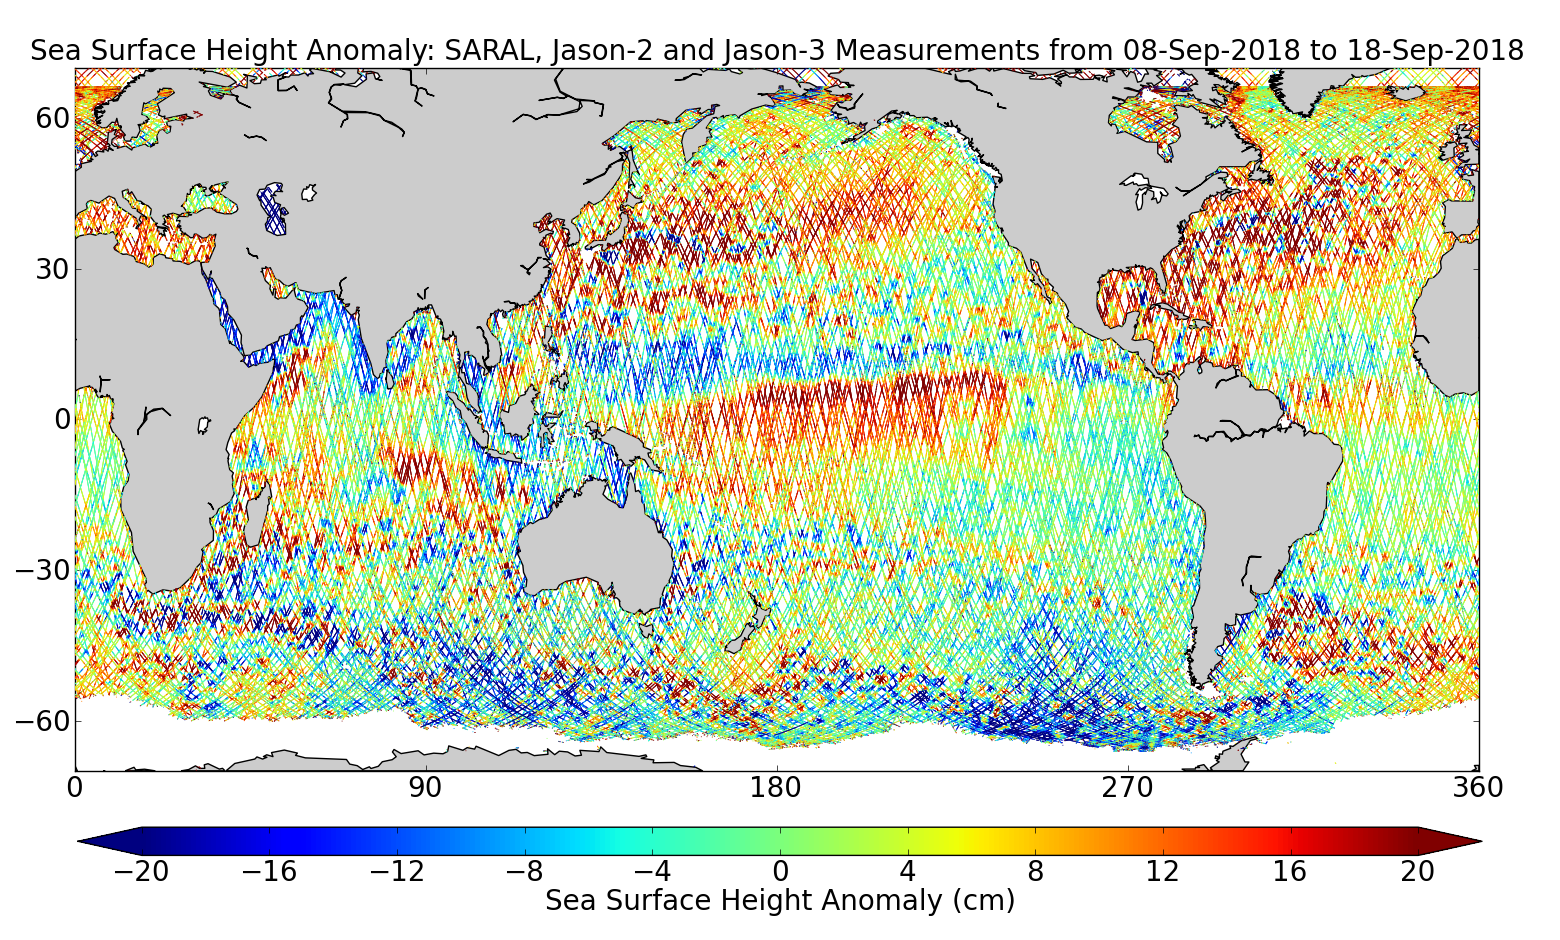 Sea Surface Height Anomaly: SARAL, Jason-2 and Jason-3 Measurements from 08-Sep-2018 to 18-Sep-2018